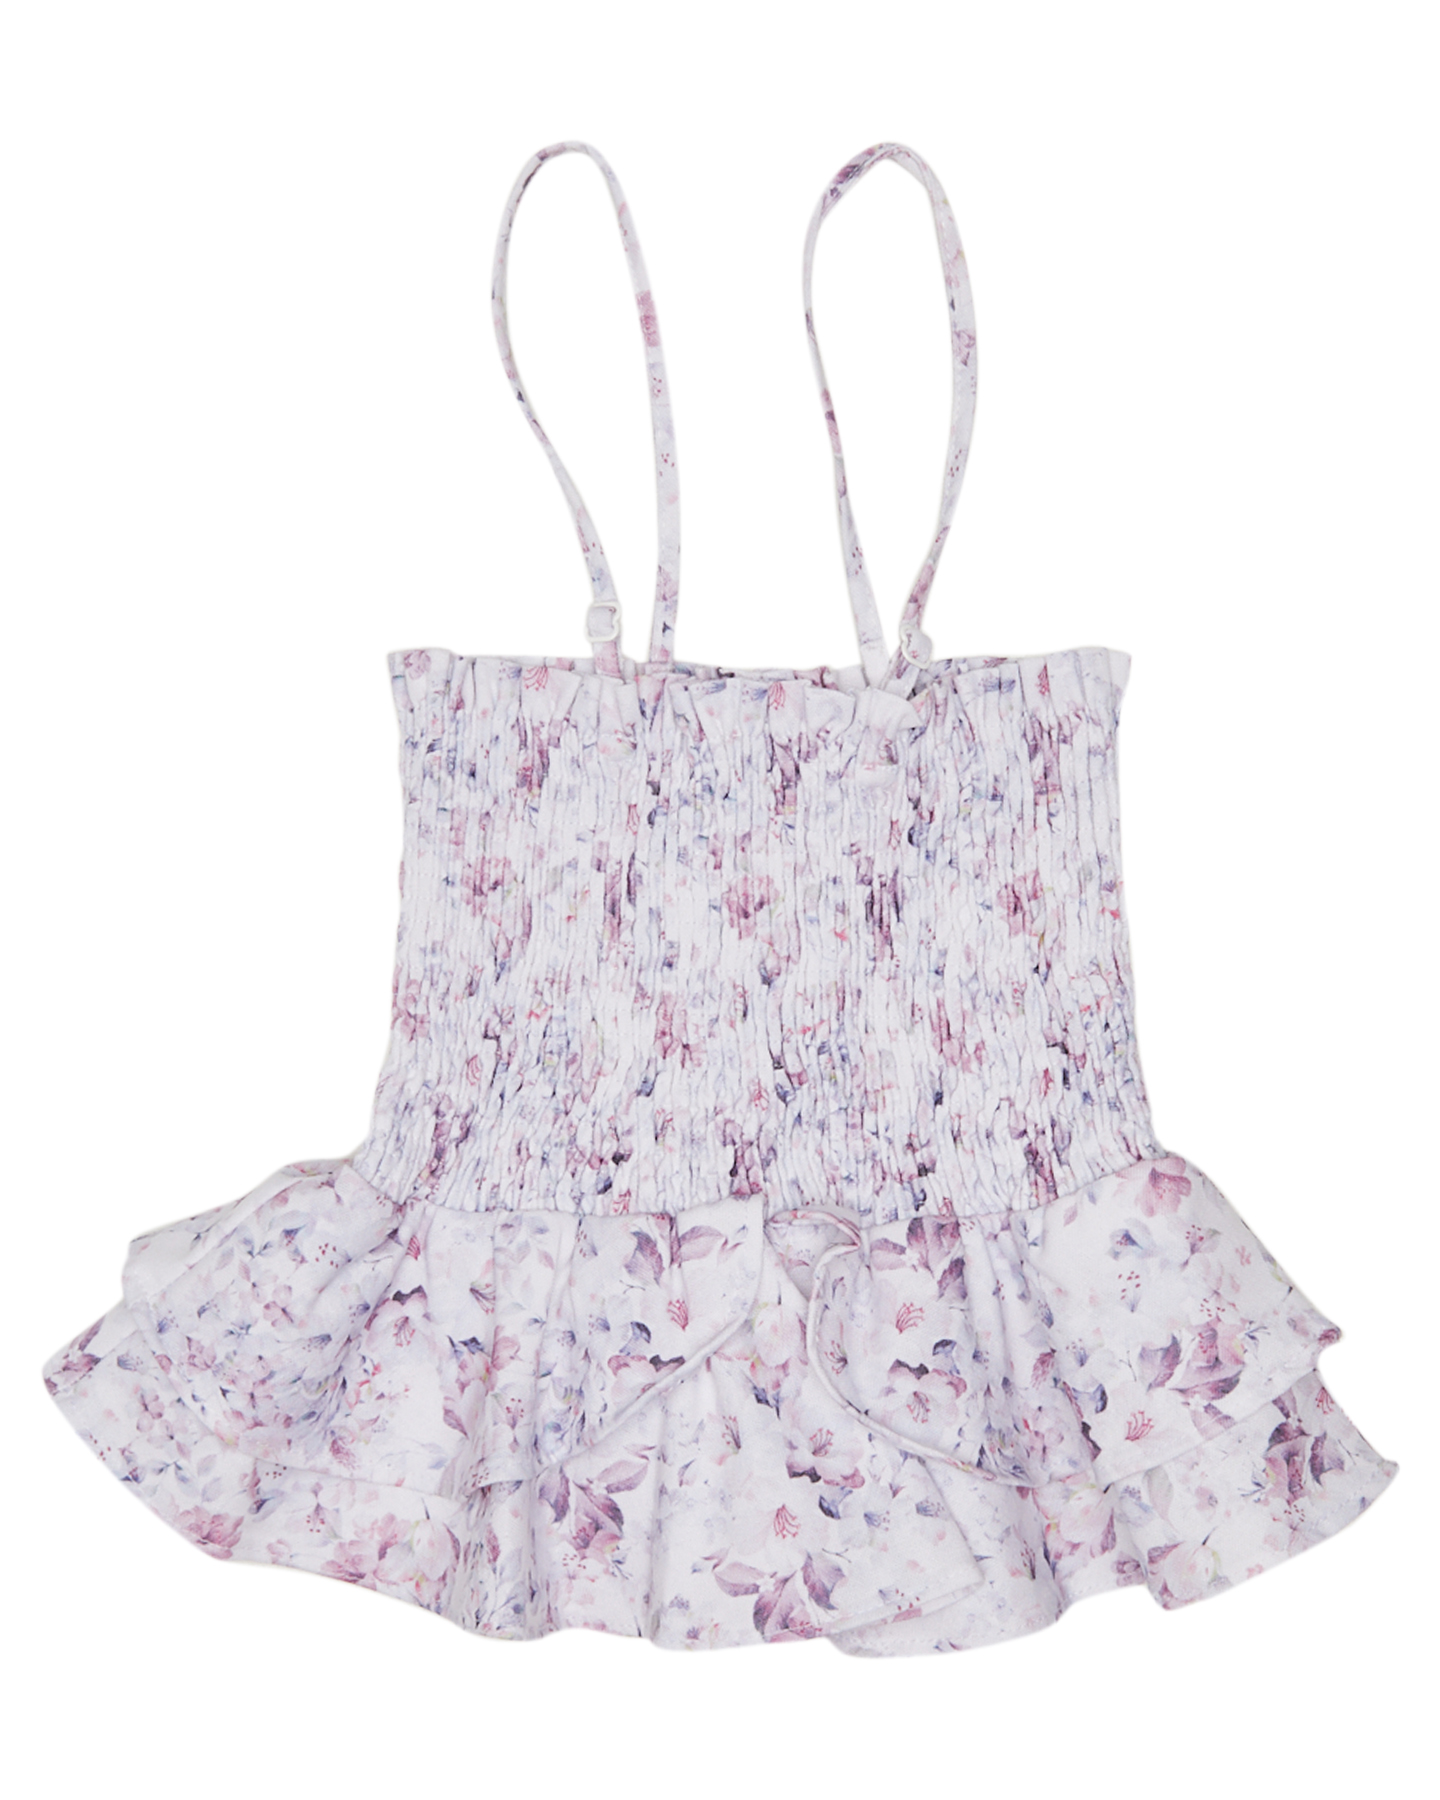 Little Hearts Girls 2 In 1  Shirred Top/Skirt - Kids Summer Bloom Lilac